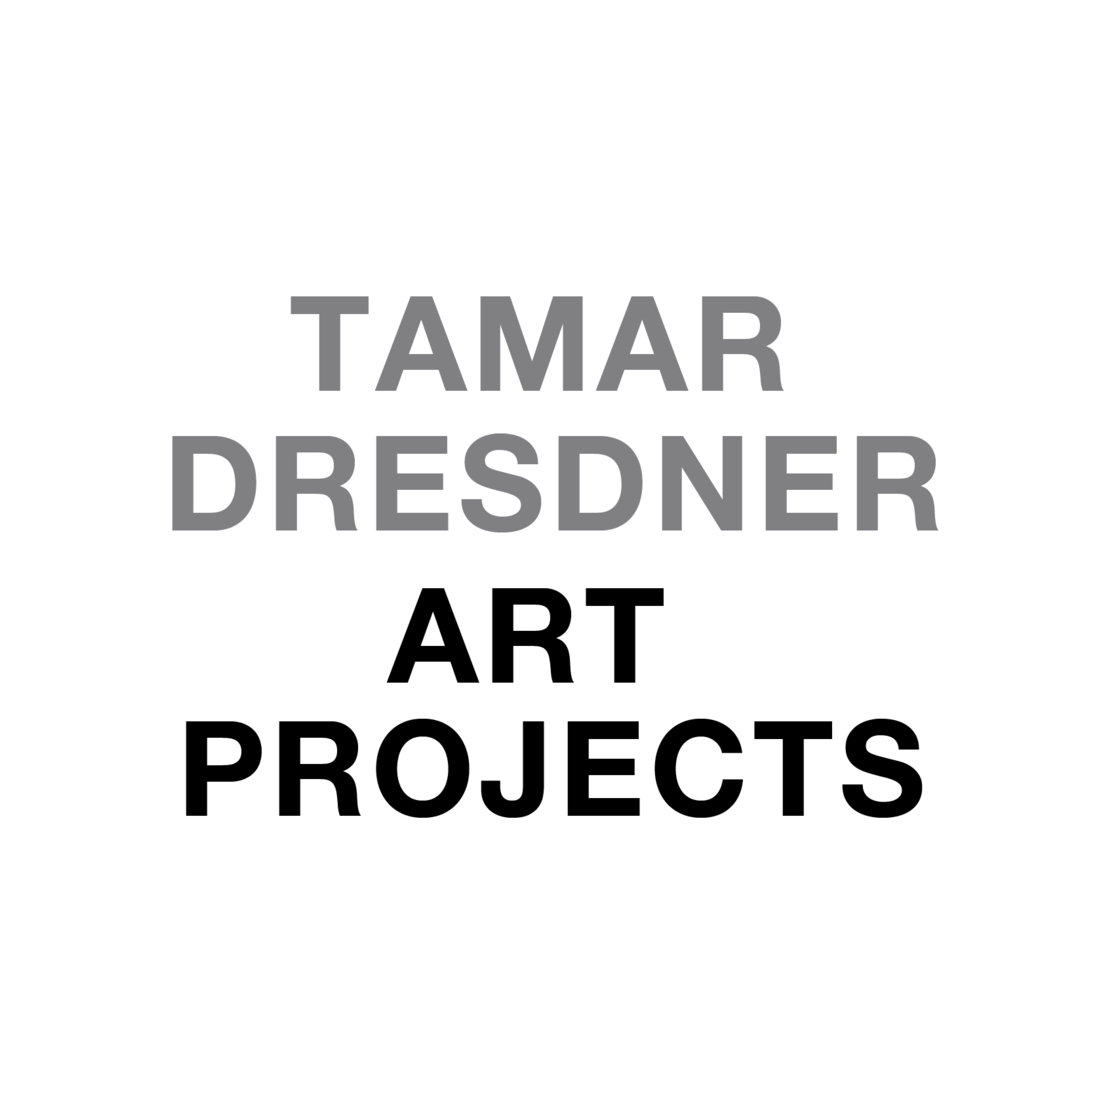 TAMAR DRESDNER ART PROJECTS